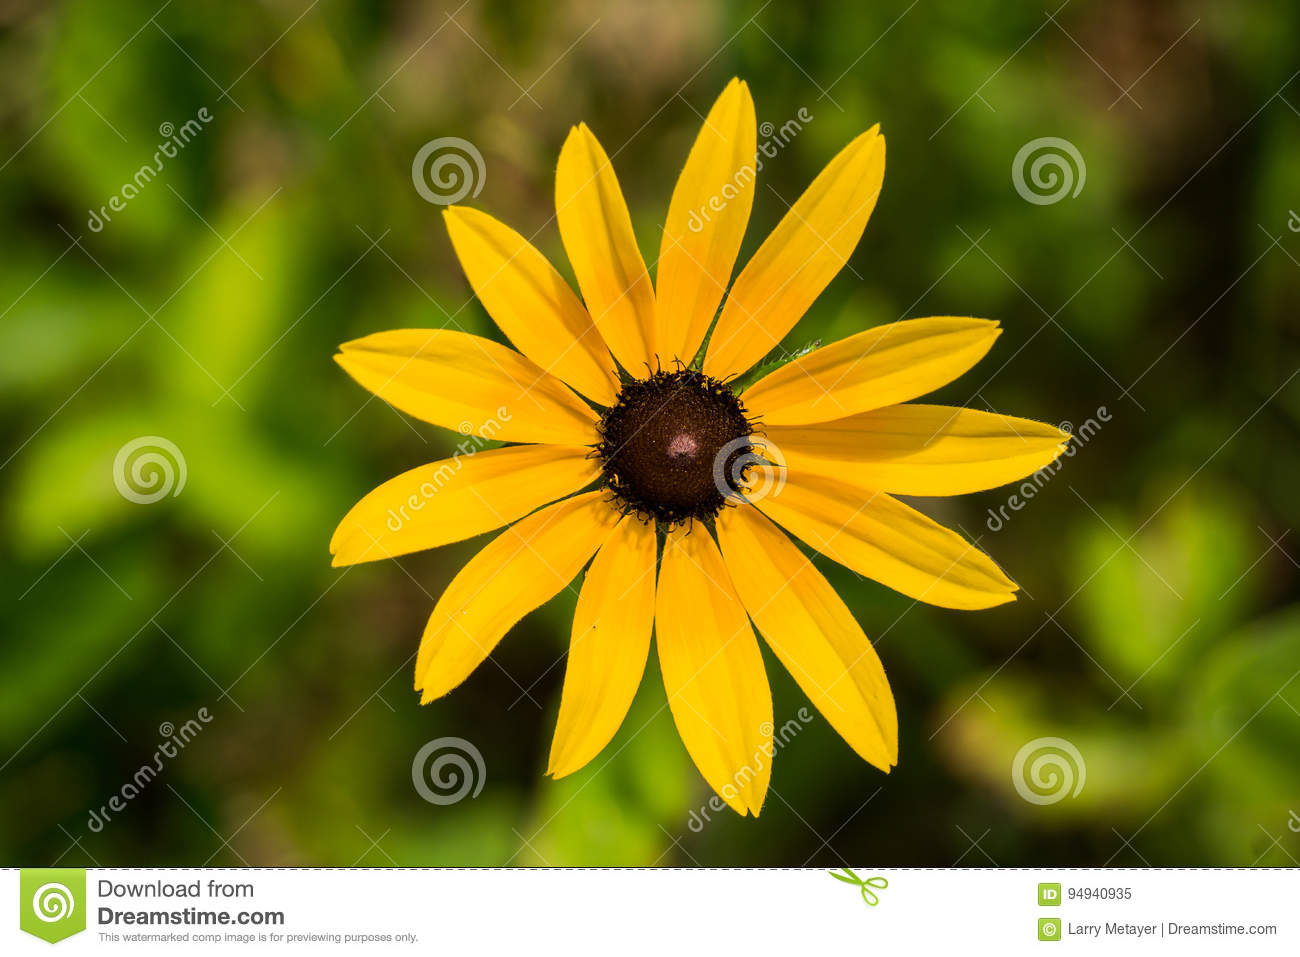 Black eyed susan rudbeckia hirta stock image image of brown black eyed susan a daisy like flower with showy golden yellow rays surrounding a brown cone shaped central disk izmirmasajfo